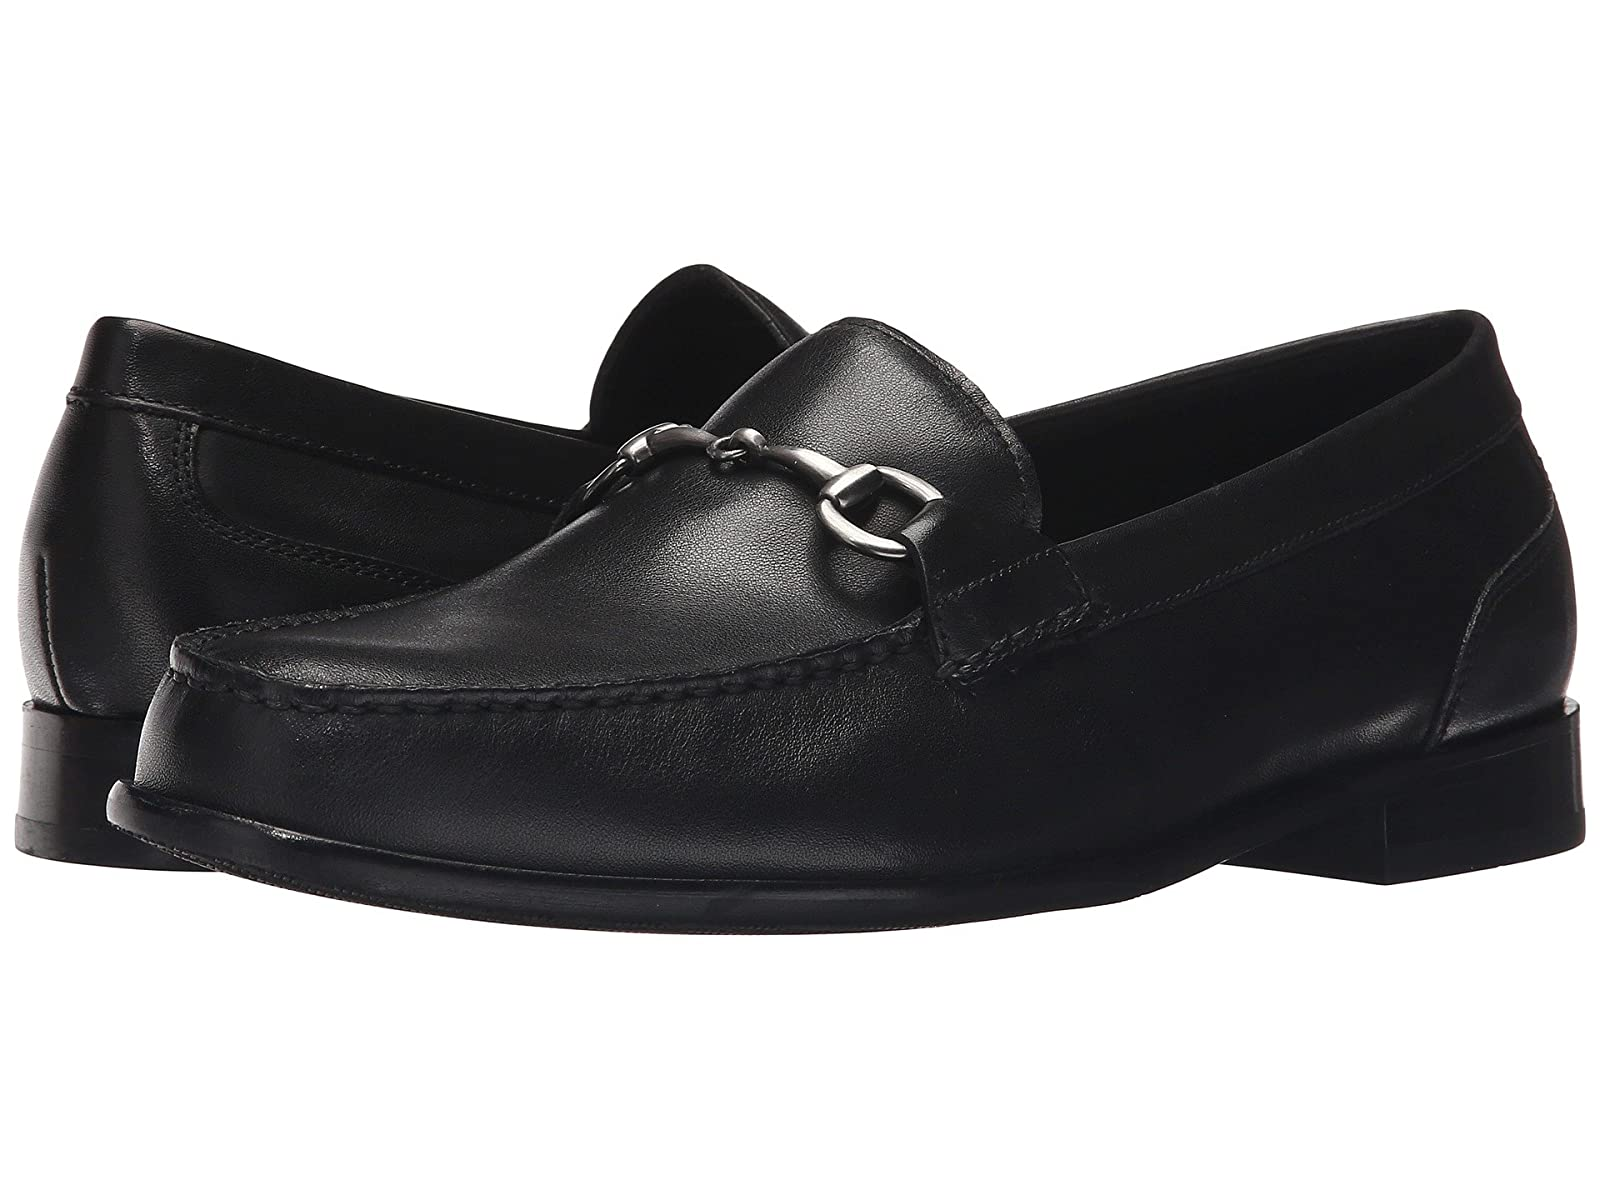 Cole Haan Fairmont BitCheap and distinctive eye-catching shoes